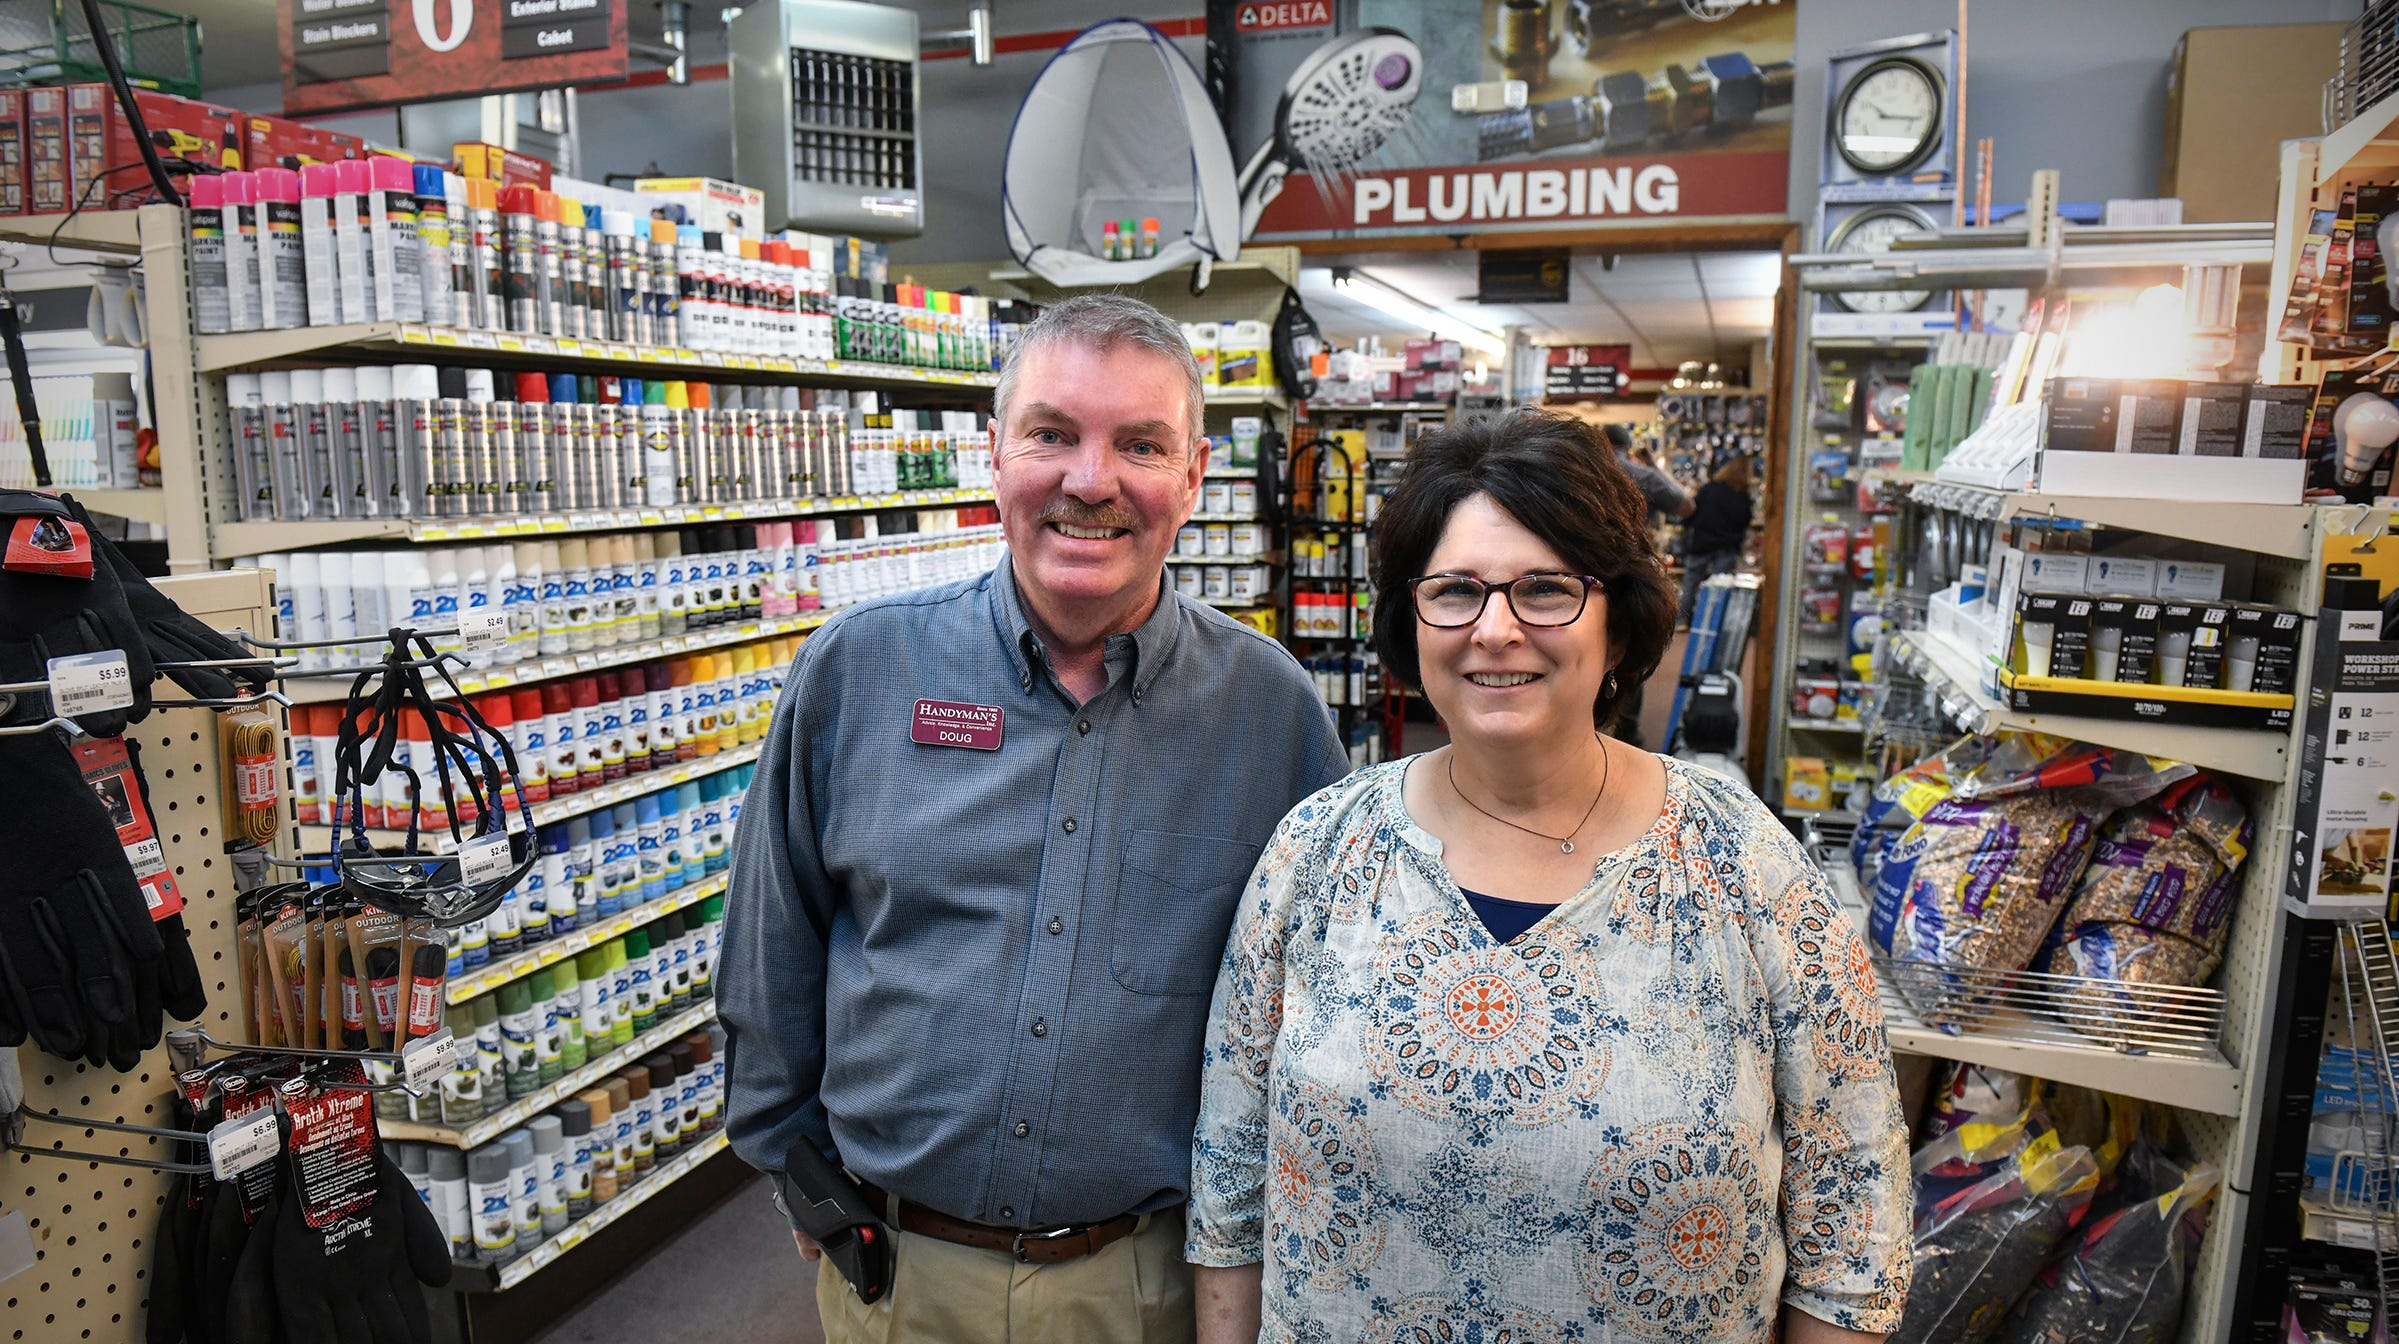 Local Business of the Year: Hard work pays off at Handyman's Hardware